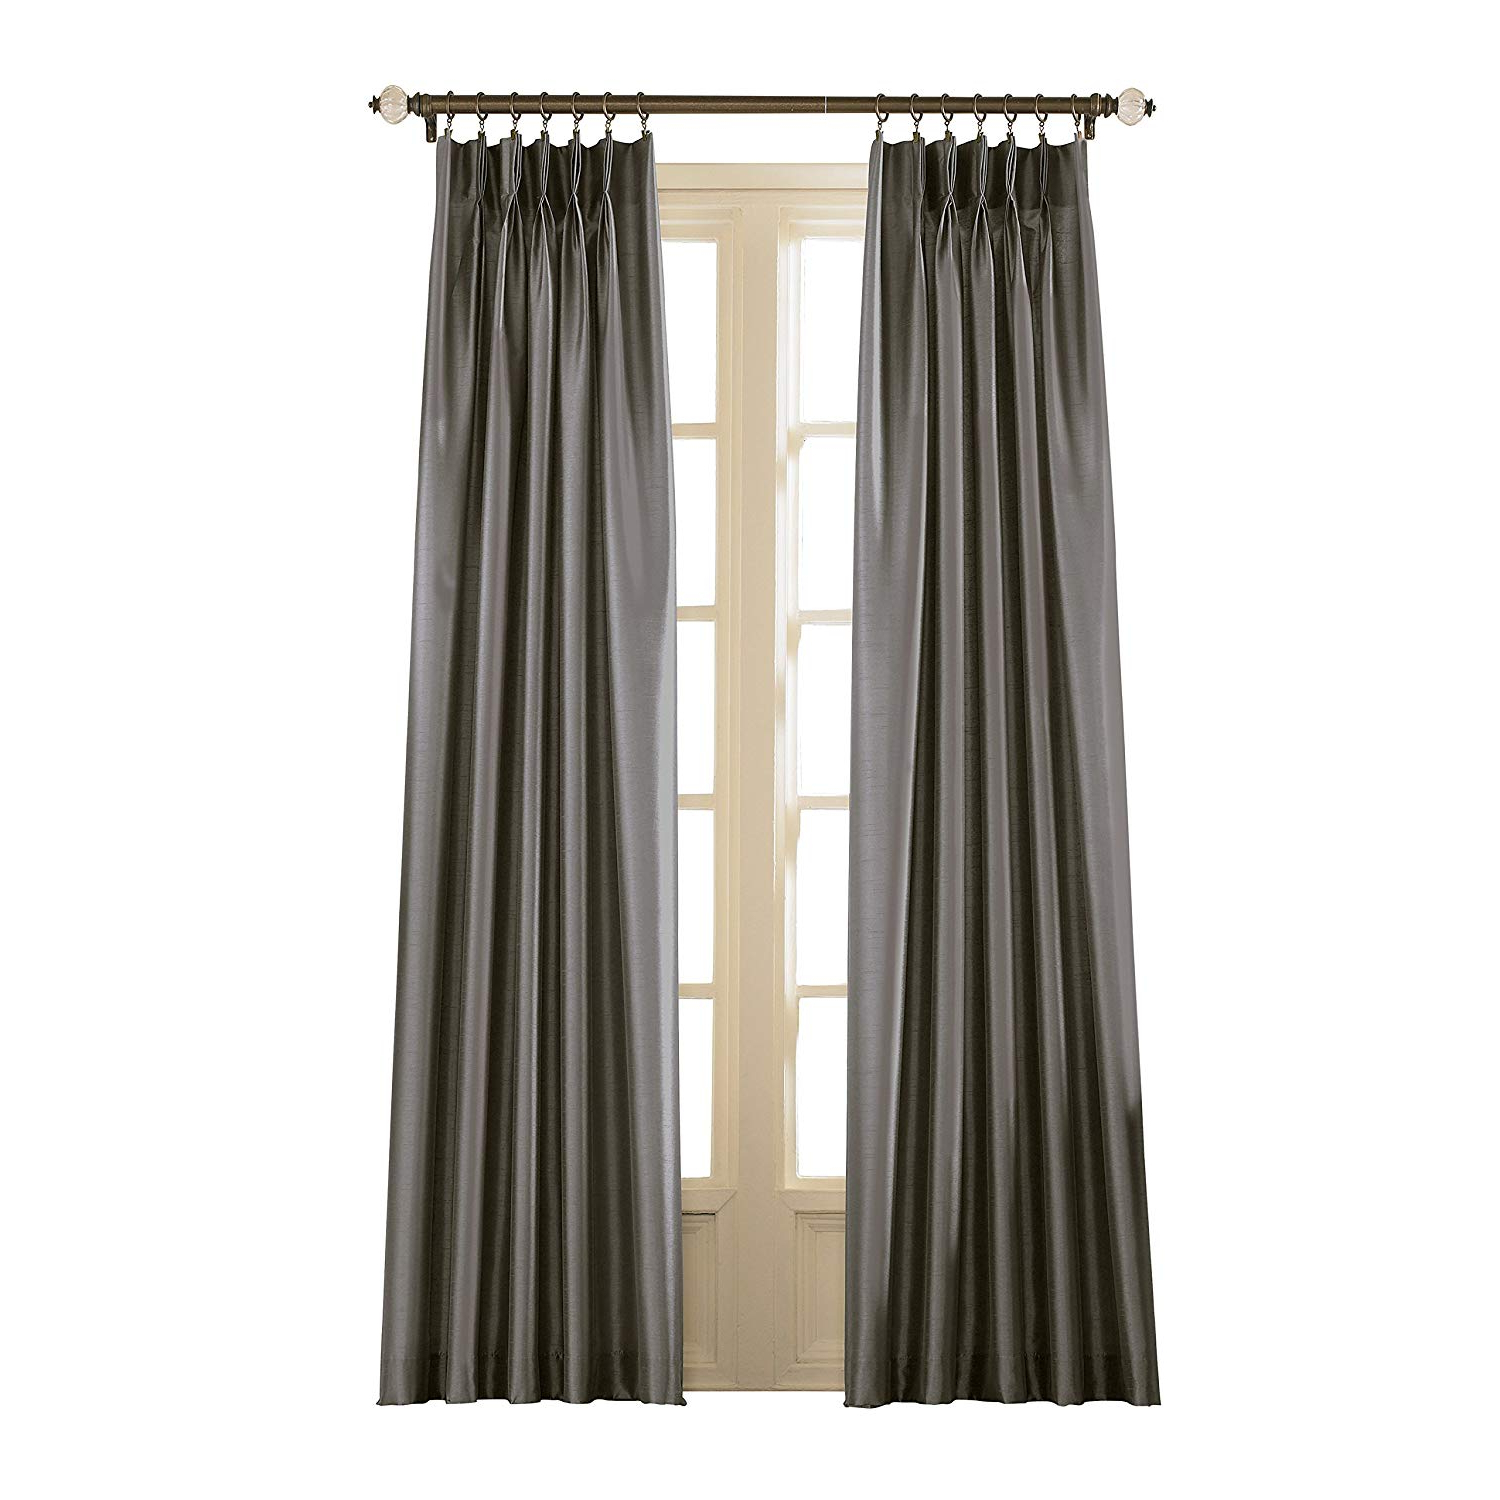 Best And Newest Curtainworks Marquee Pinch Pleat Curtain Panel, Pewter, Faux Silk, 30 Inch X 120 Inch, Solid With Solid Faux Silk Taffeta Graphite Single Curtain Panels (View 18 of 20)